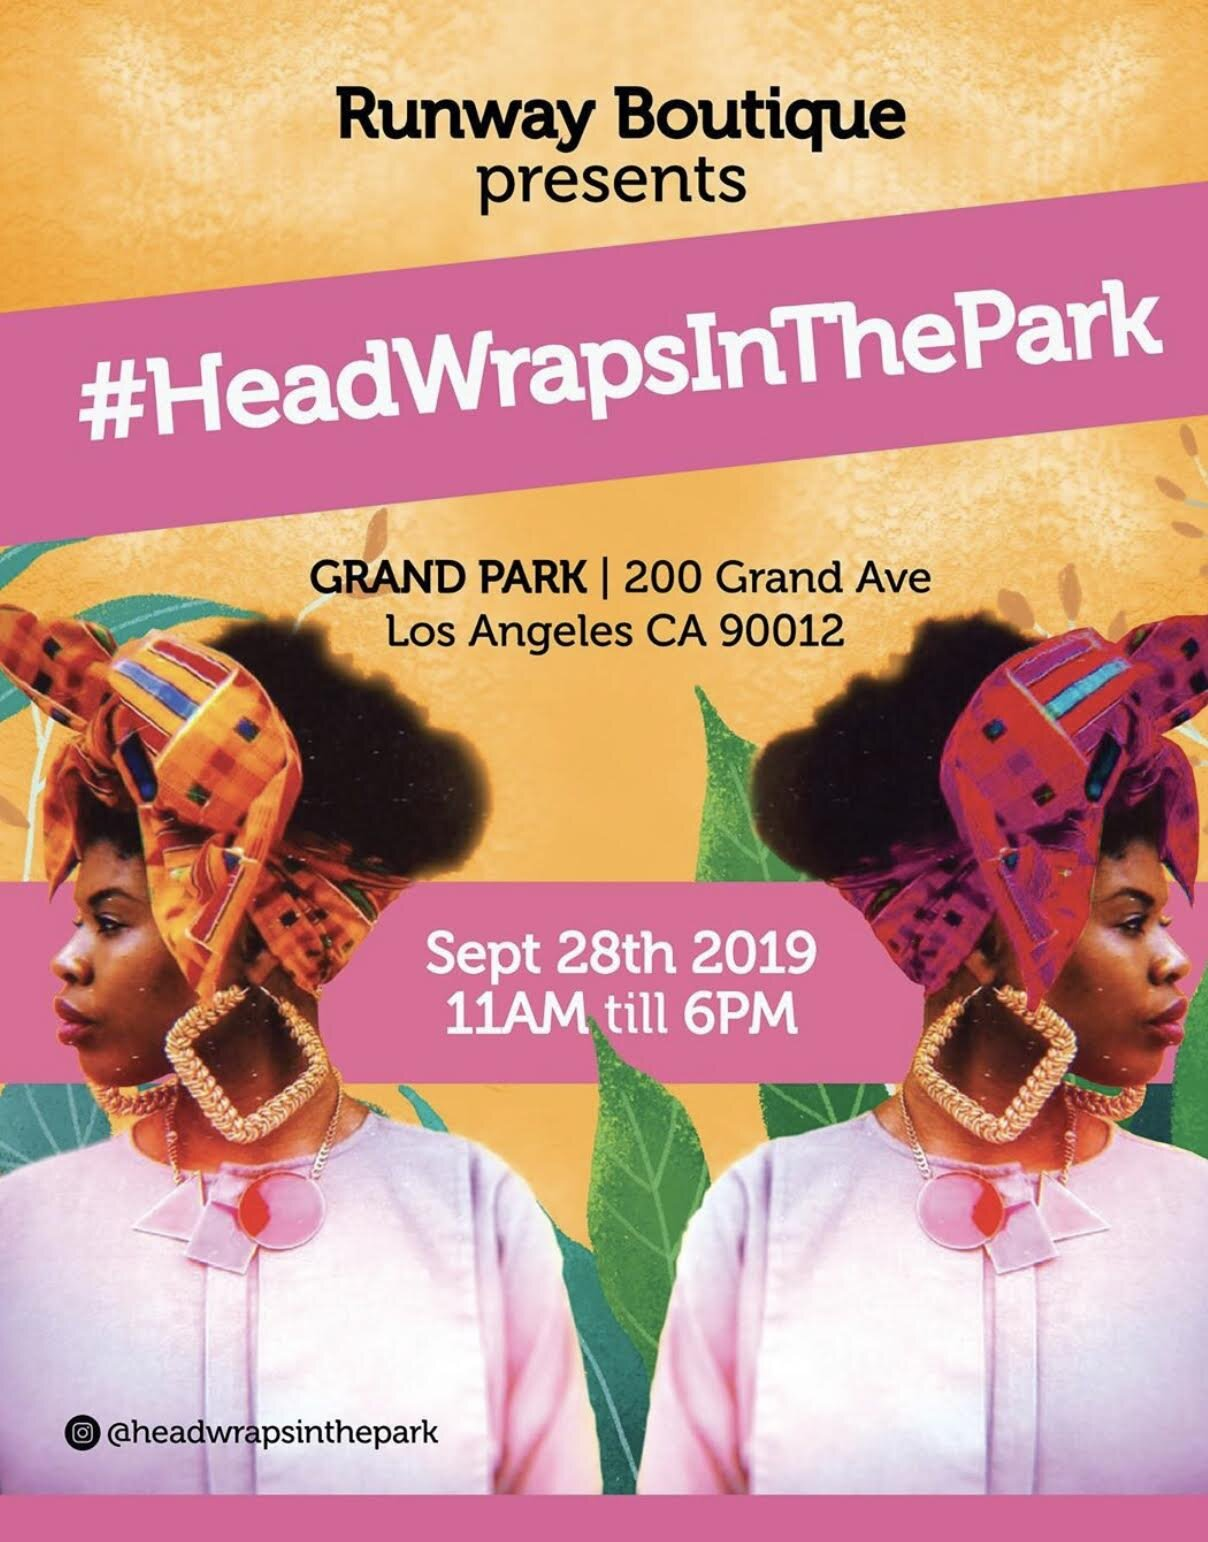 Fall is here! To kick the new season off, Junie Bees Butta will be at  Head Wraps in the Park  ( HWP ) this Saturday, September 28 from 11am-6pm at  Grand Park.  You don't want to miss this event! Fun for the entire family, kids creative lab, music, food trucks, free entry, and of course lots of Junie Bees Butta! Come out to stock up on Butta to keep your skin glowing and moisturized. for Fall. Look for us in the Beauty tent with other awesome beauty and skincare vendors.  For those of you who can't make it, enjoy  HWP  market prices all this week using code  HWP20  for 20% off all orders over $20.  We love our Butta Family and we don't want anyone to miss out!  See you soon and happy shopping!    Butta + Love=  Junie Bees Butta